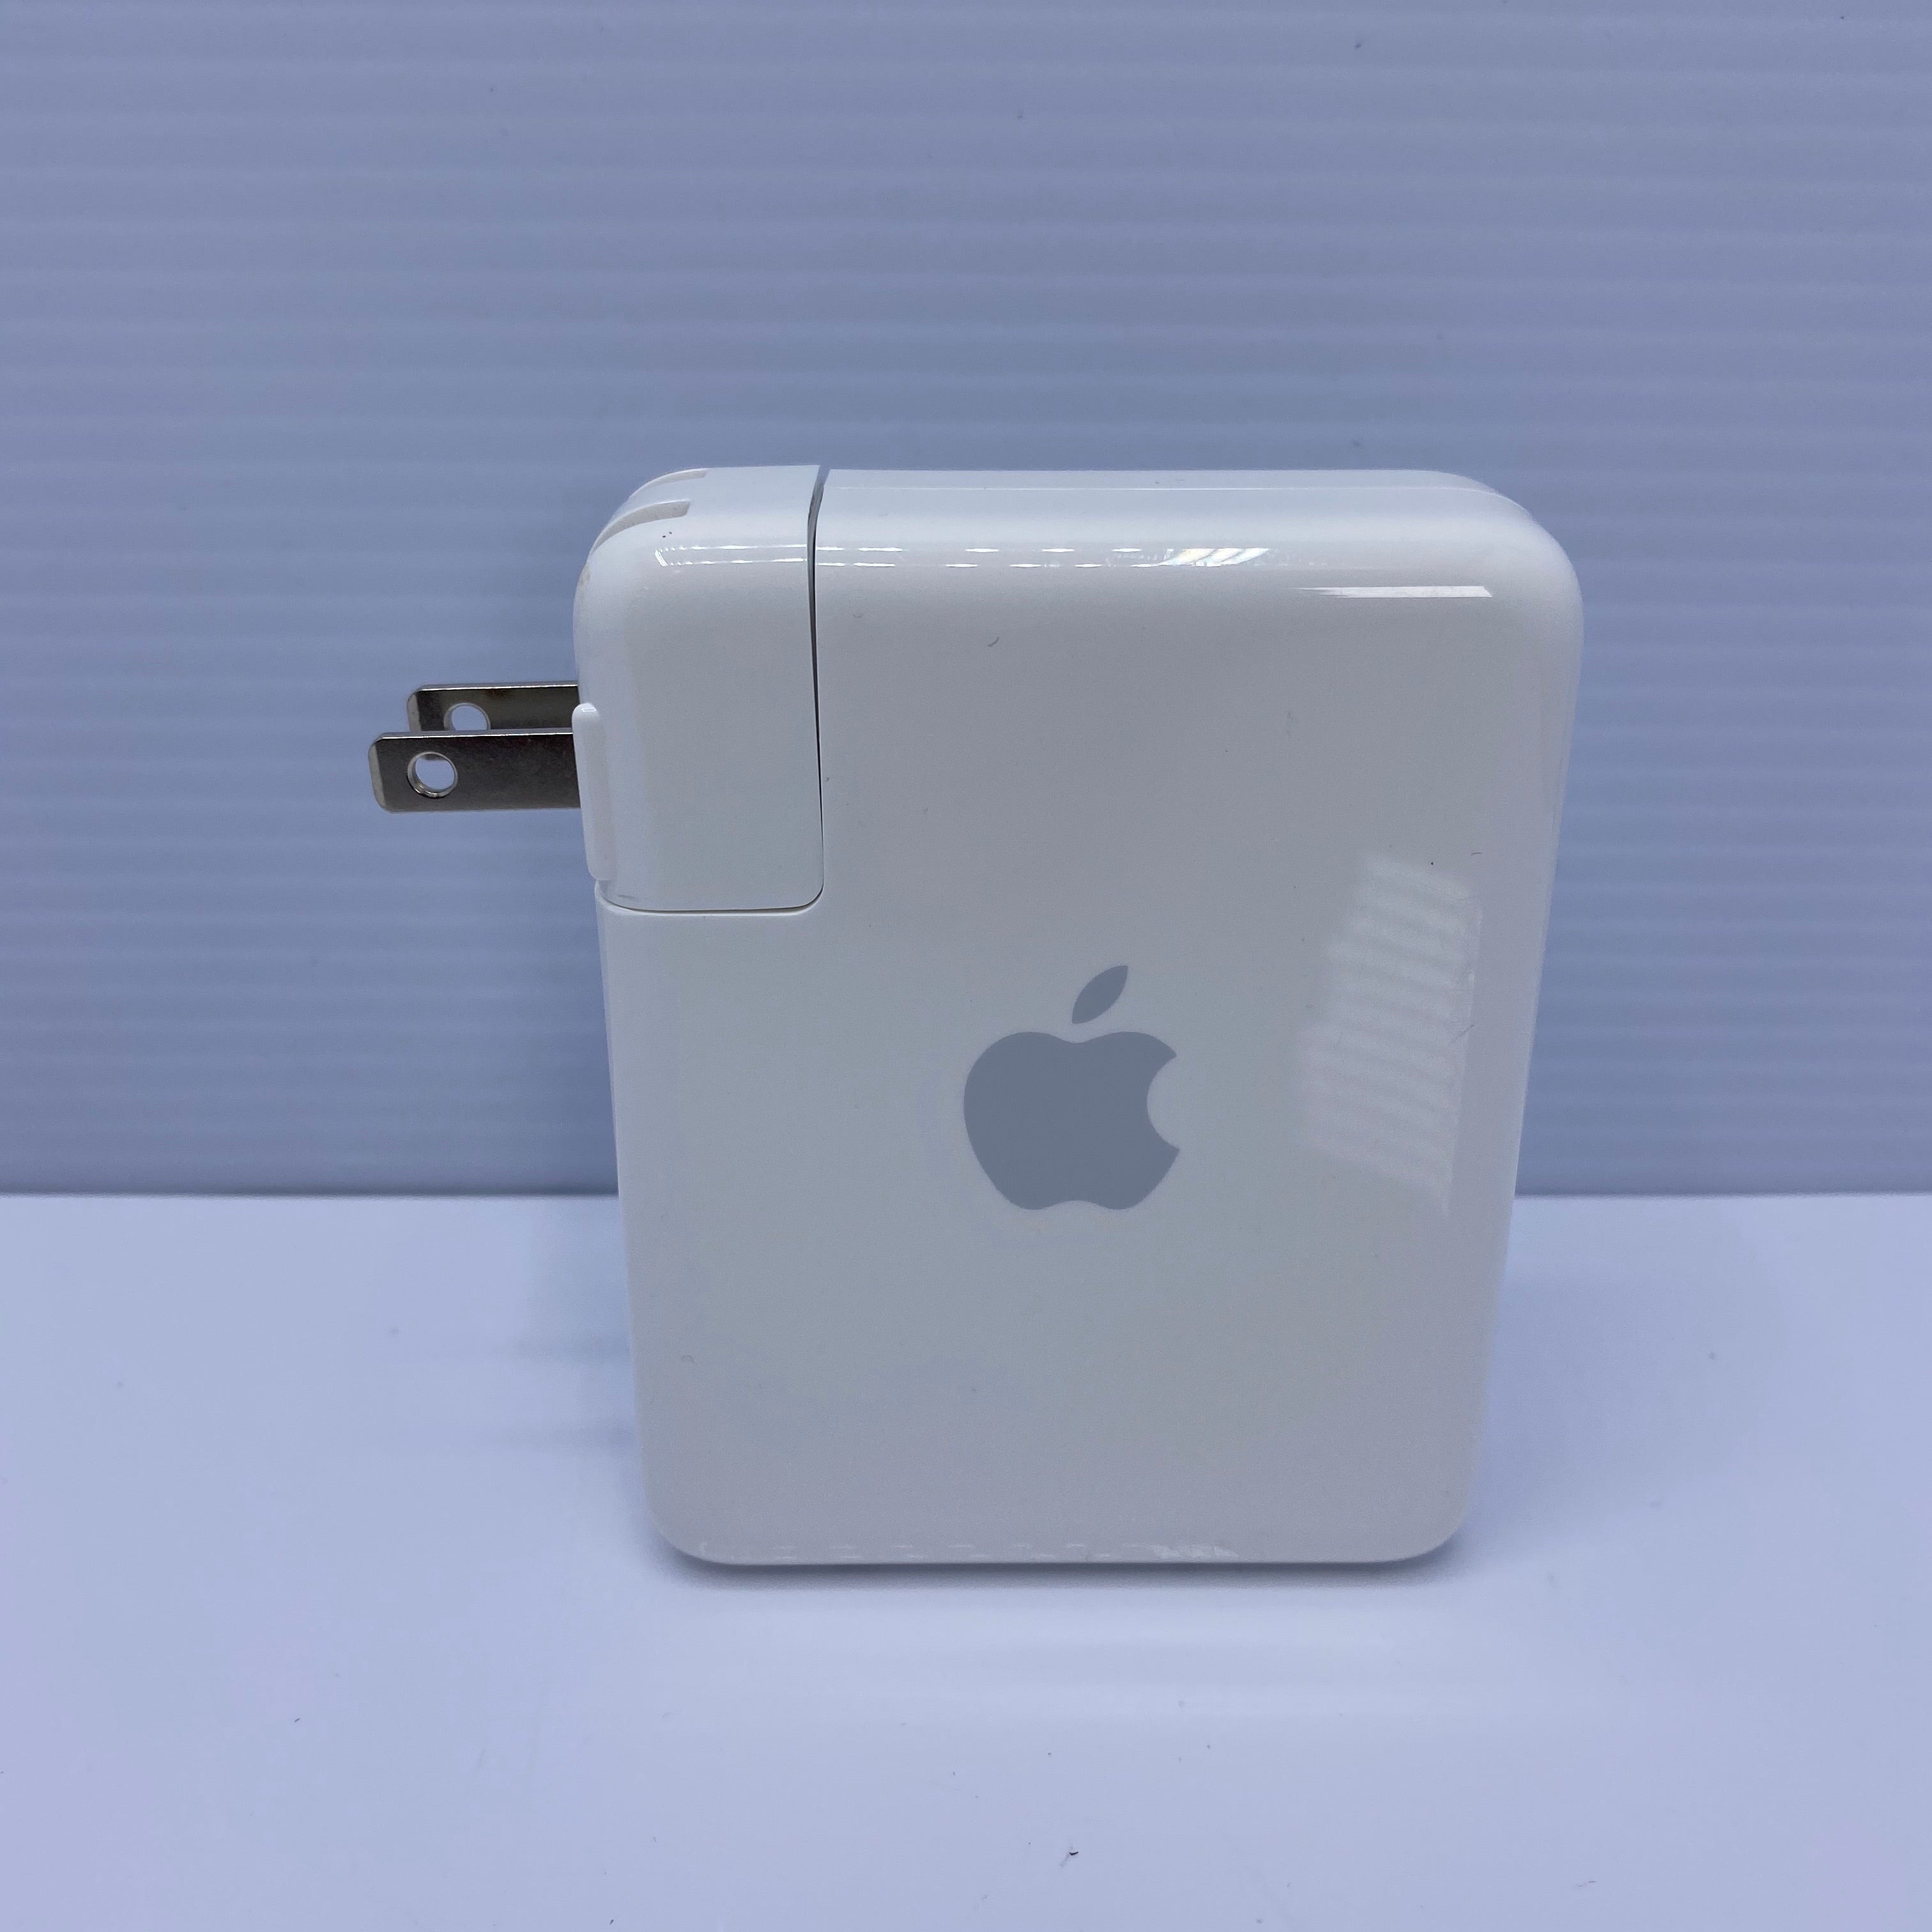 Apple Wireless Access Point